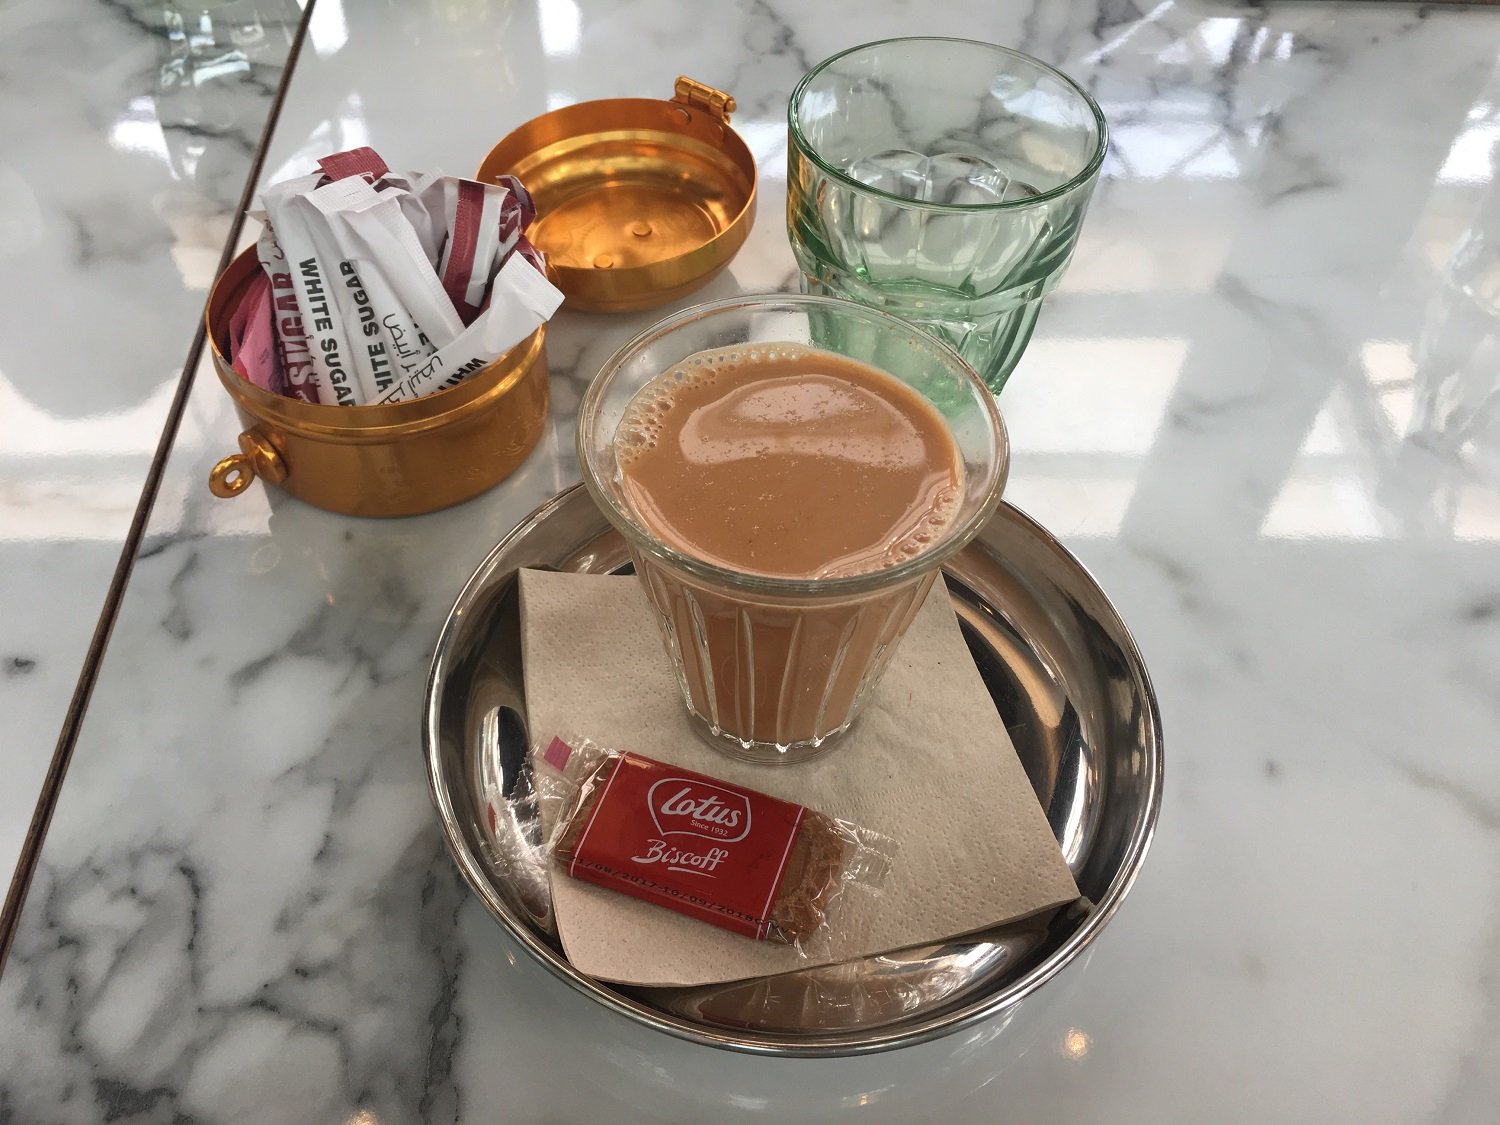 The Karak chai at the end completes my happiness